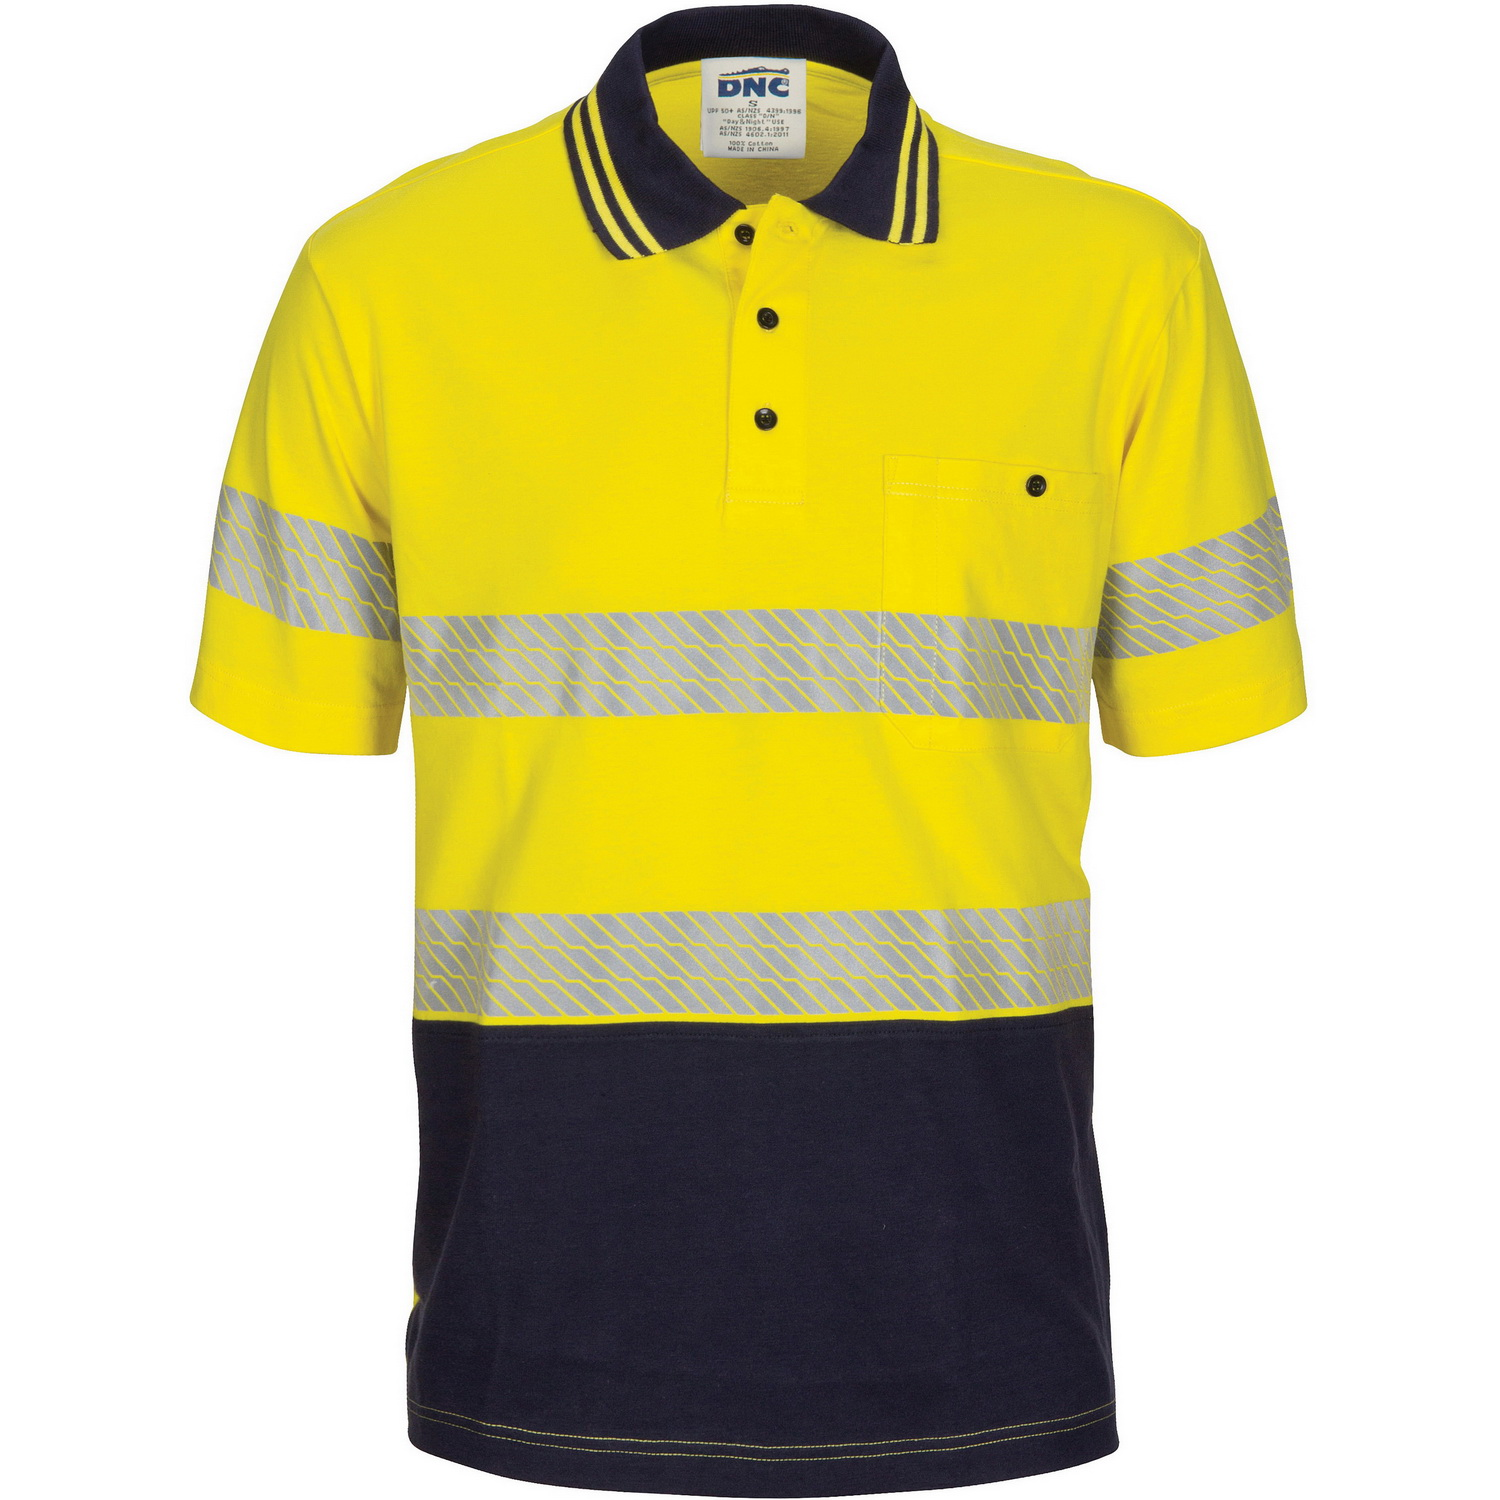 HIVIS Segment Taped Cotton Jersey Polo - Short Sleeve